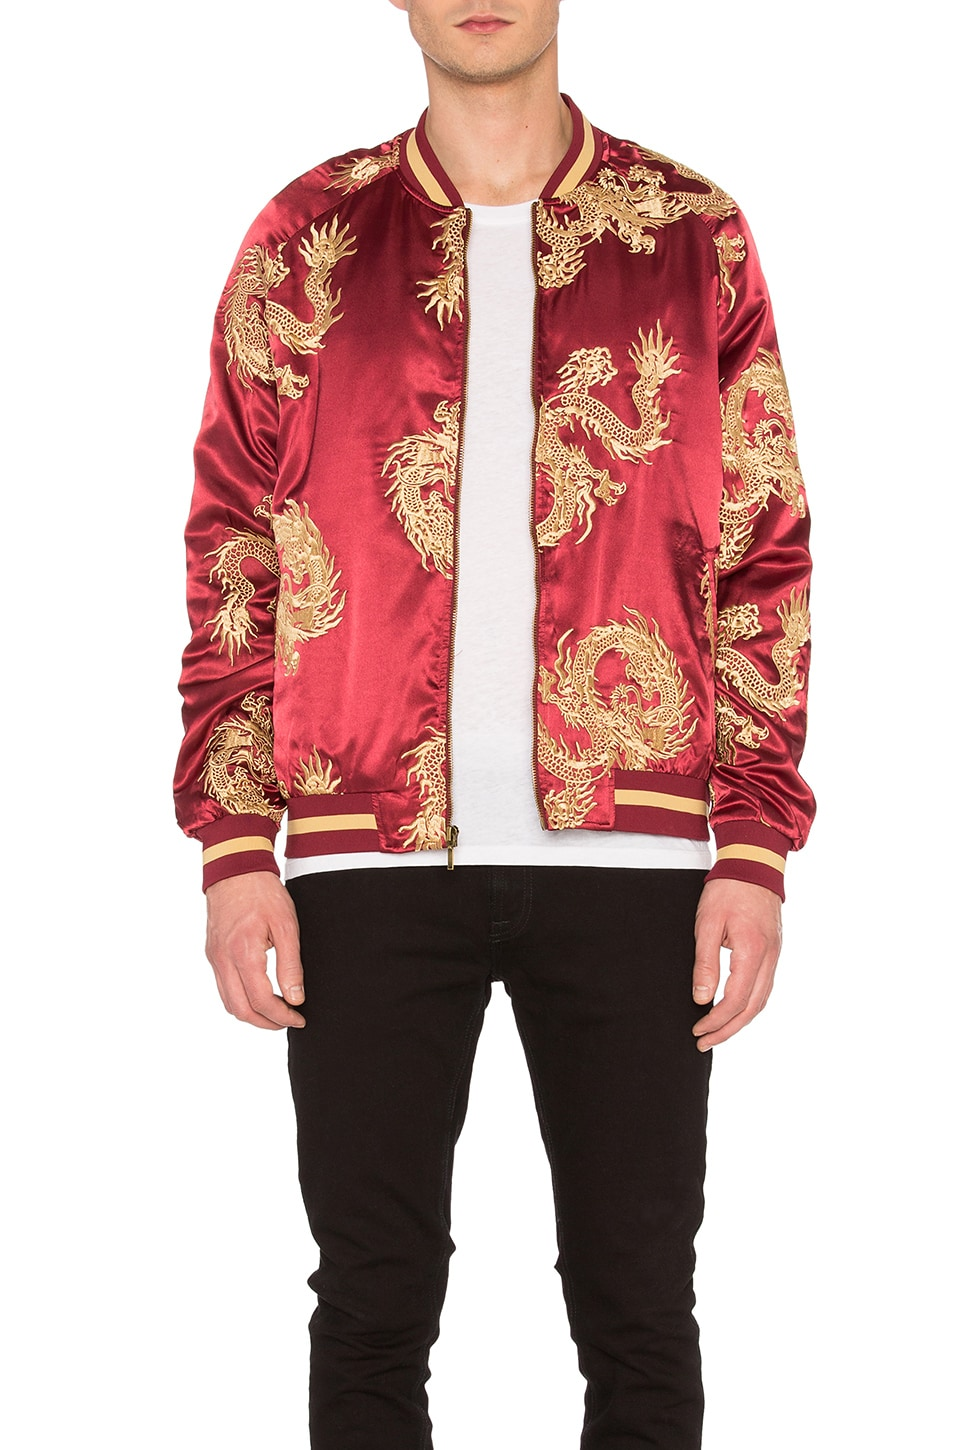 Dragon Bomber Jacket by Standard Issue